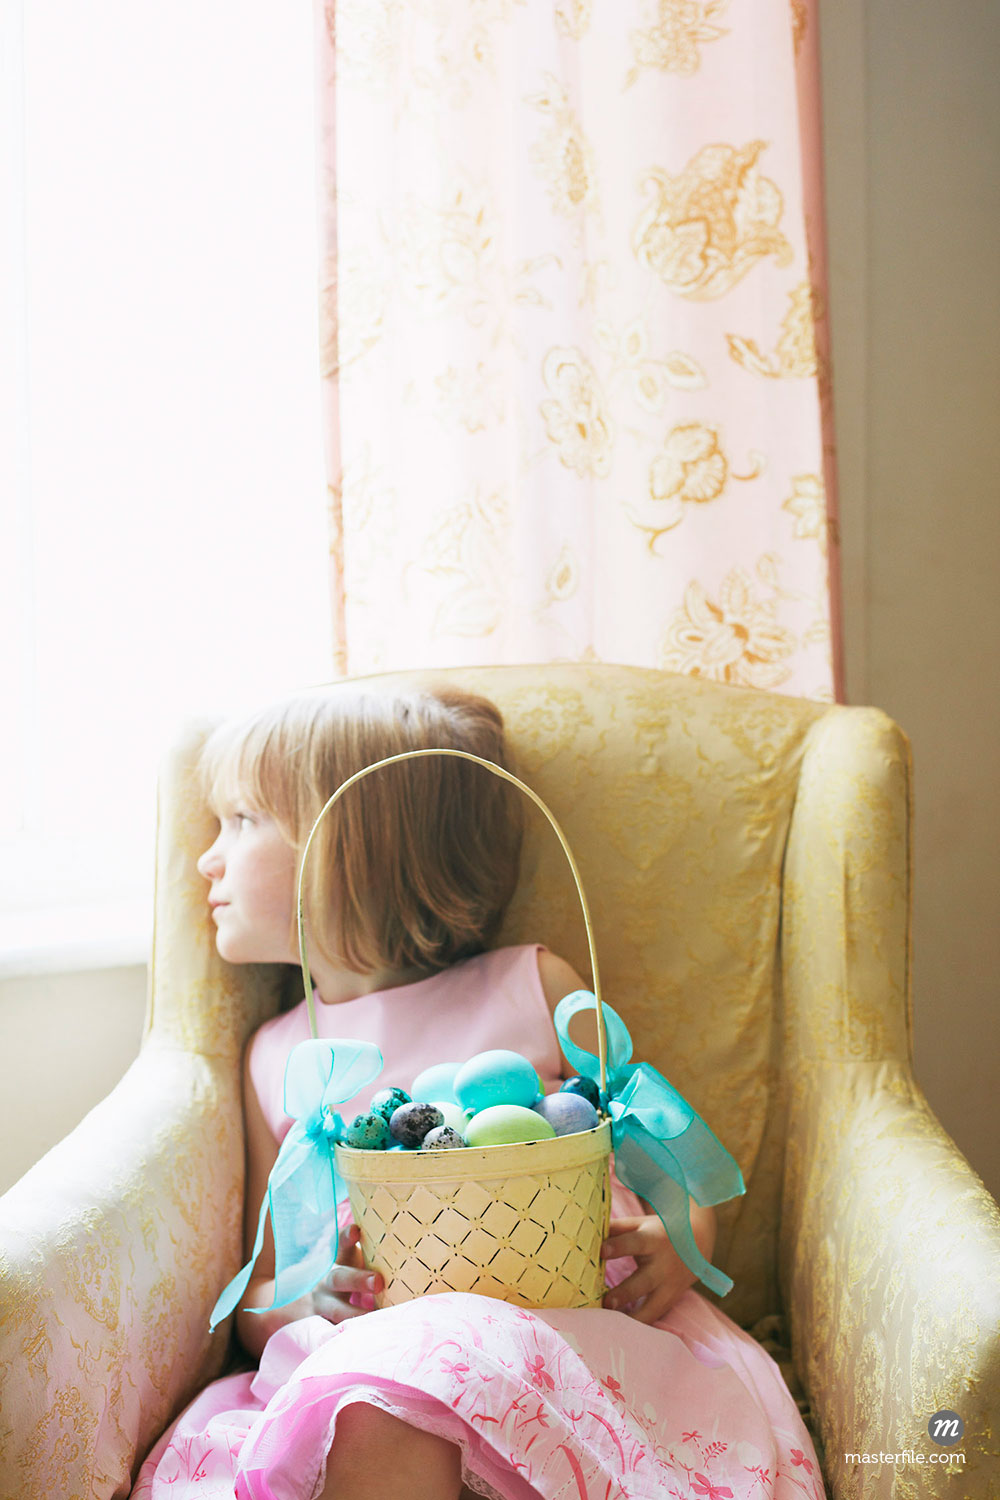 Girl Looking Out Window, Holding a Basket of Easter Eggs   ©  Susan Findlay / Masterfile